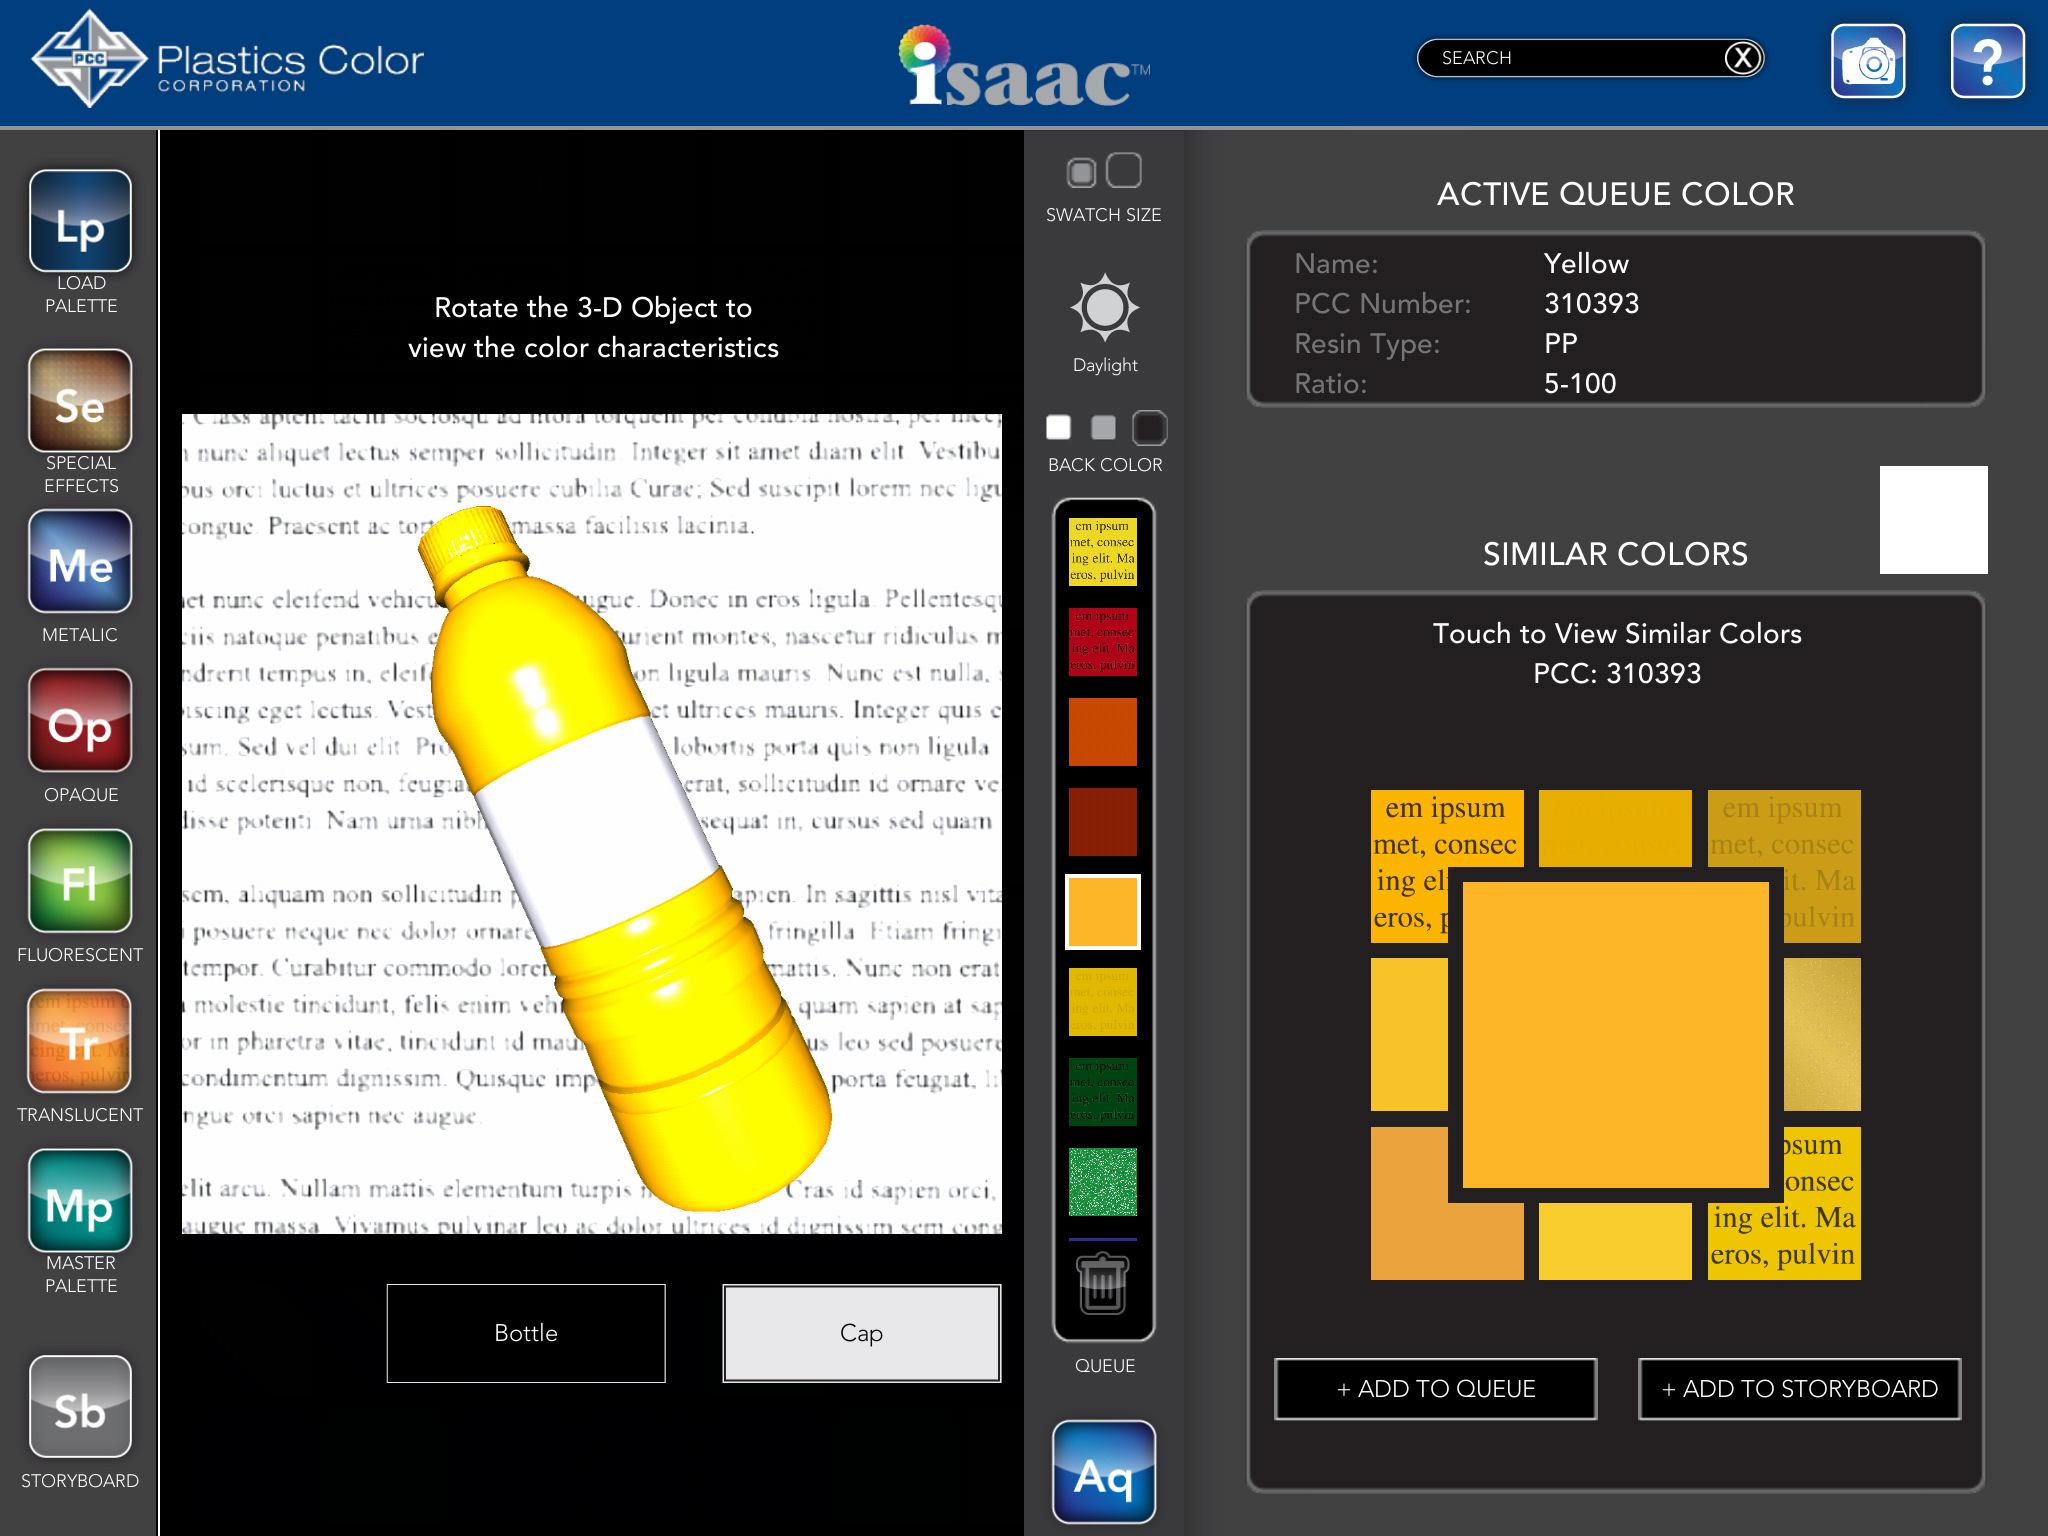 Plastics Color Corp. Announces Phase II of its isaacTM Web Portal